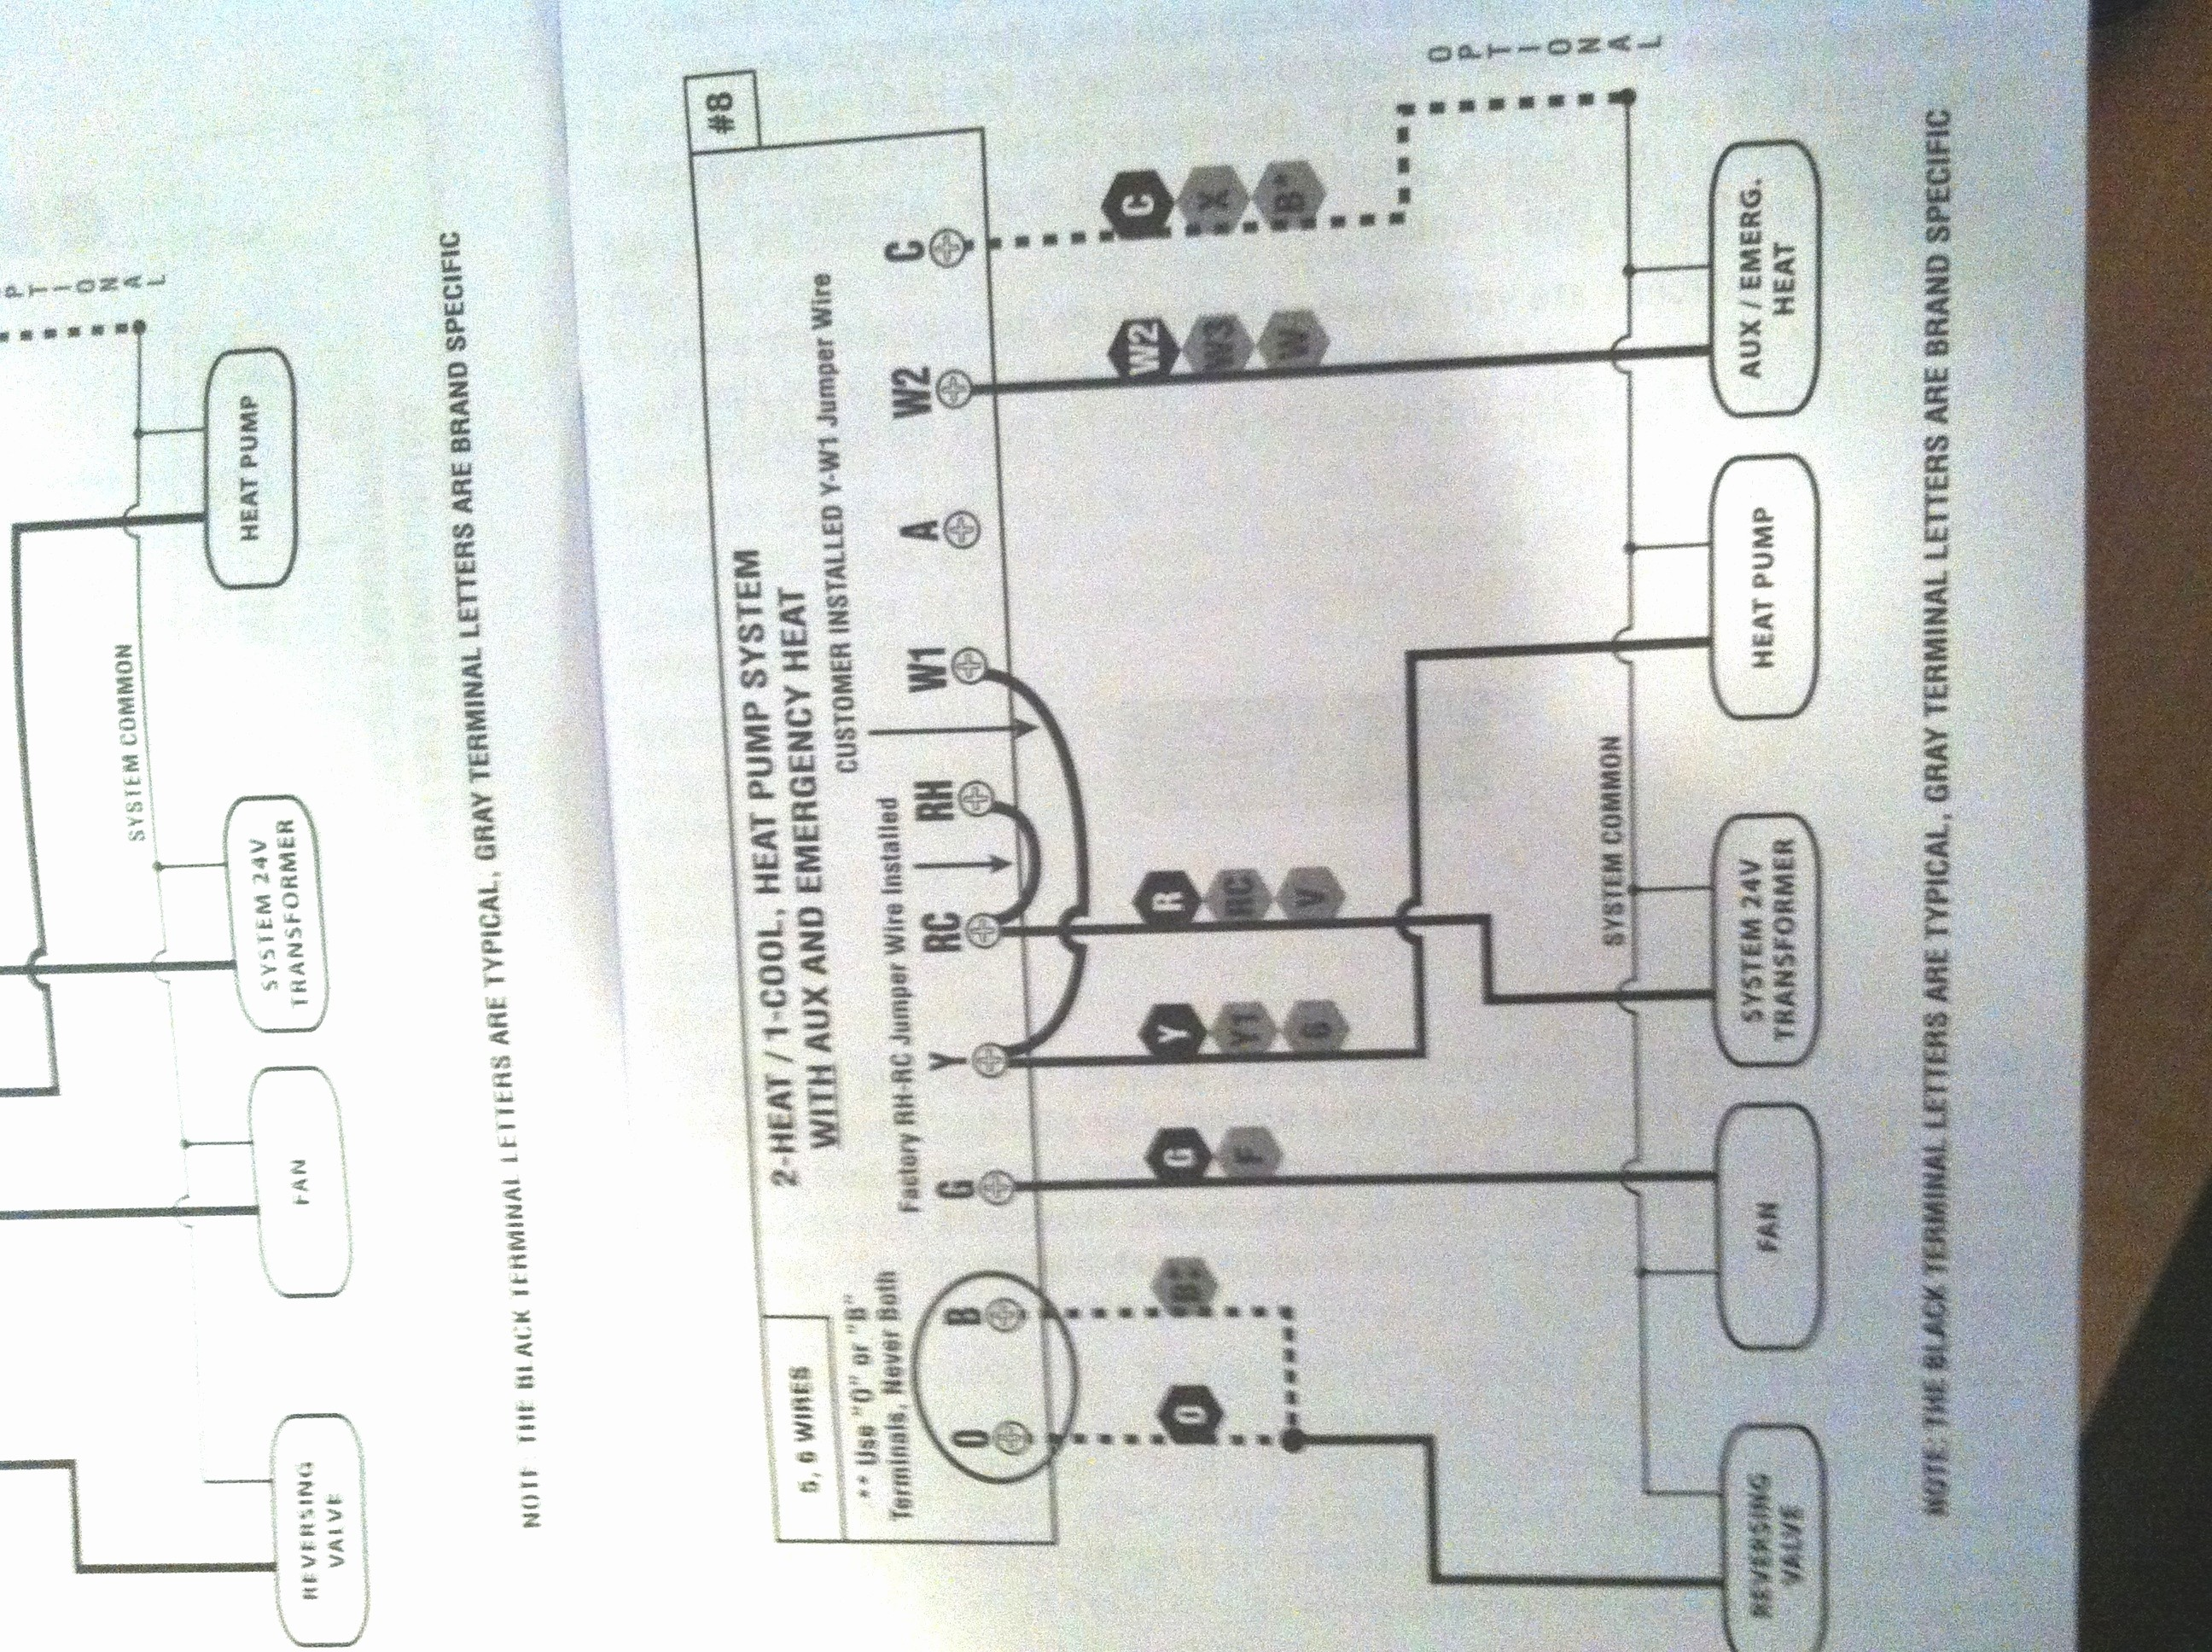 Wiring Diagram For Old Thermostat Honeywell T87f Elegant Lux 500 Image